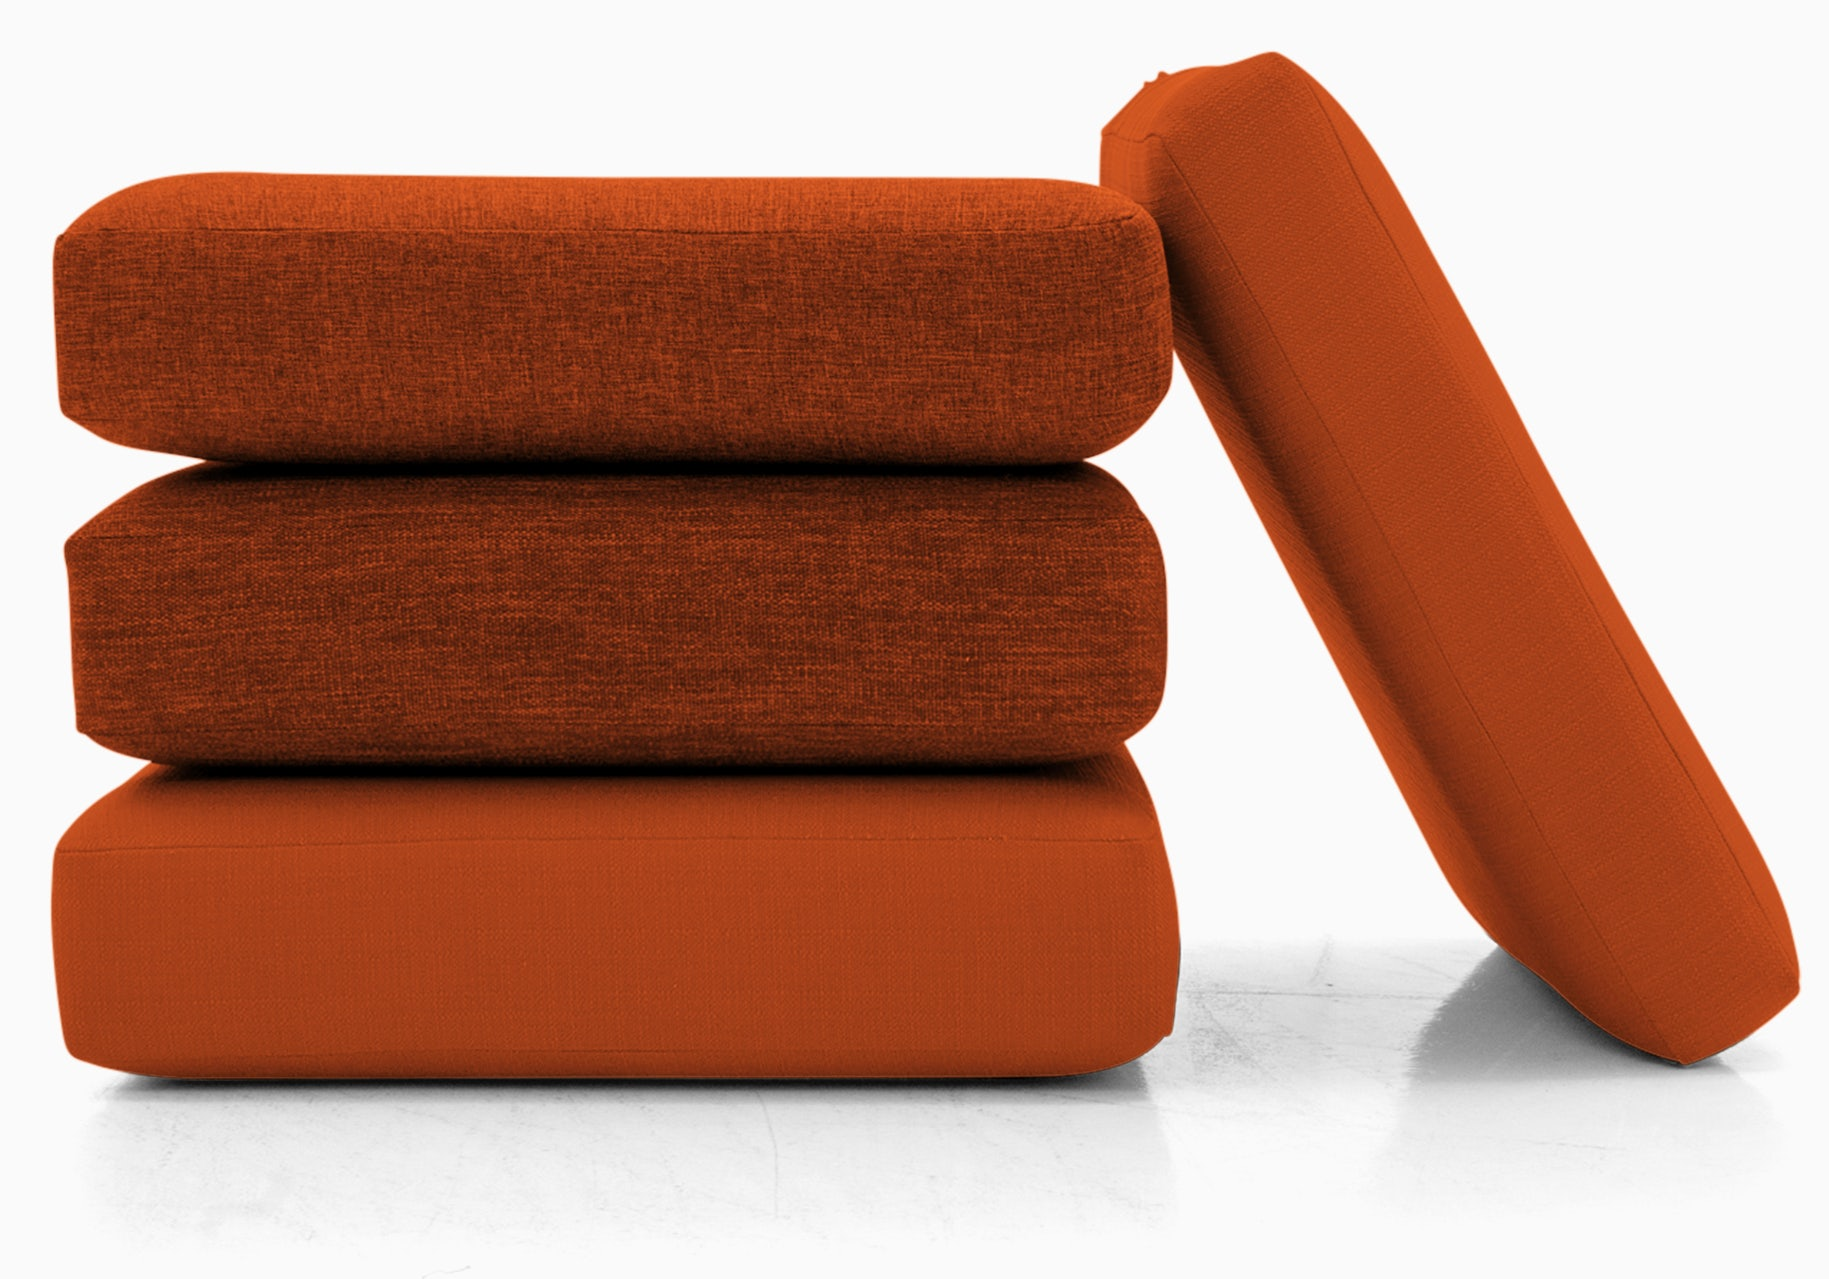 soto cushions and covers %28set%29 vibe sunkist